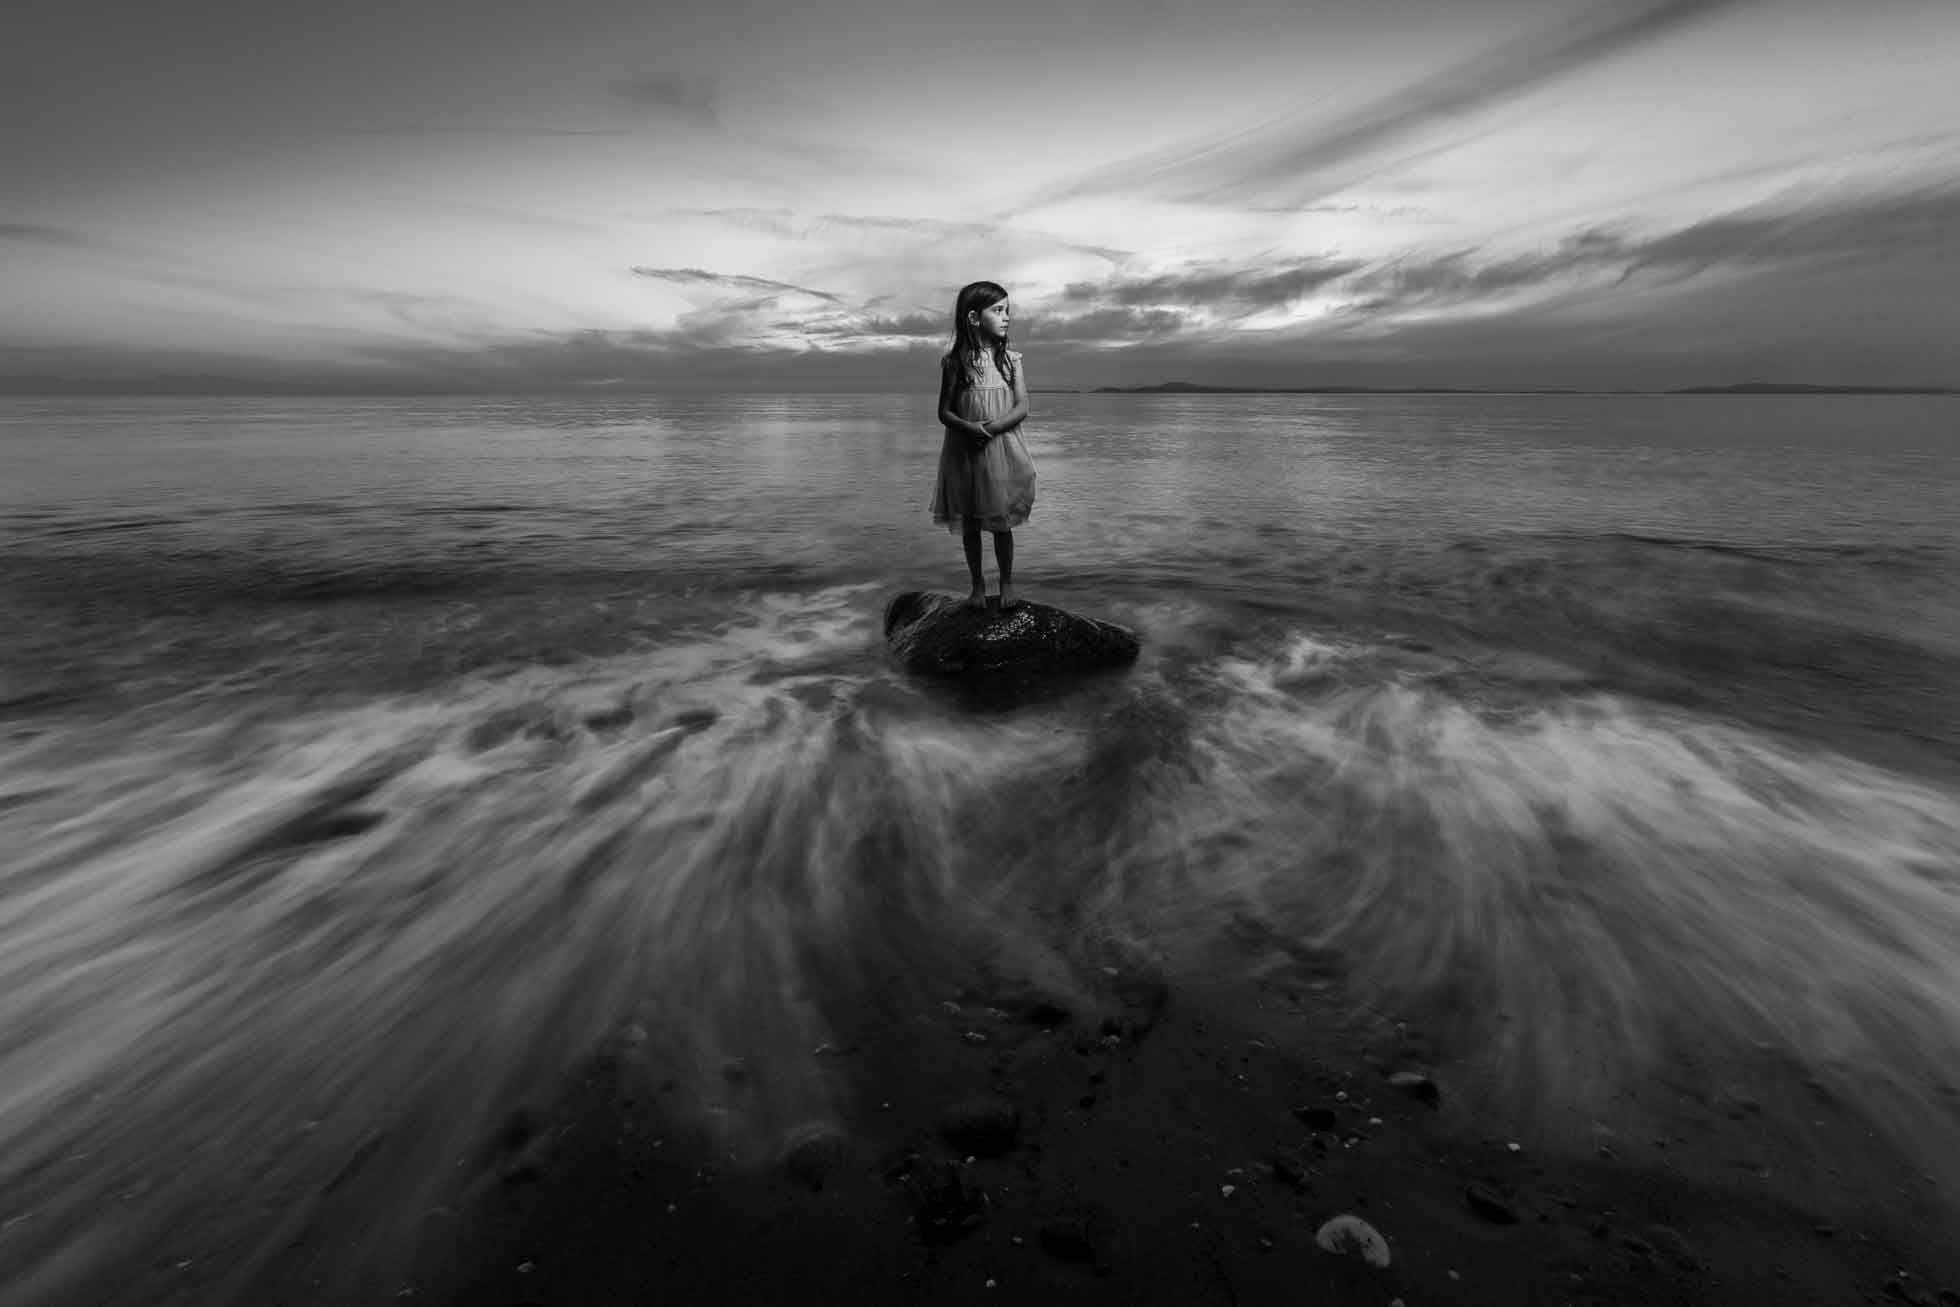 Girl standing on a rock in the water